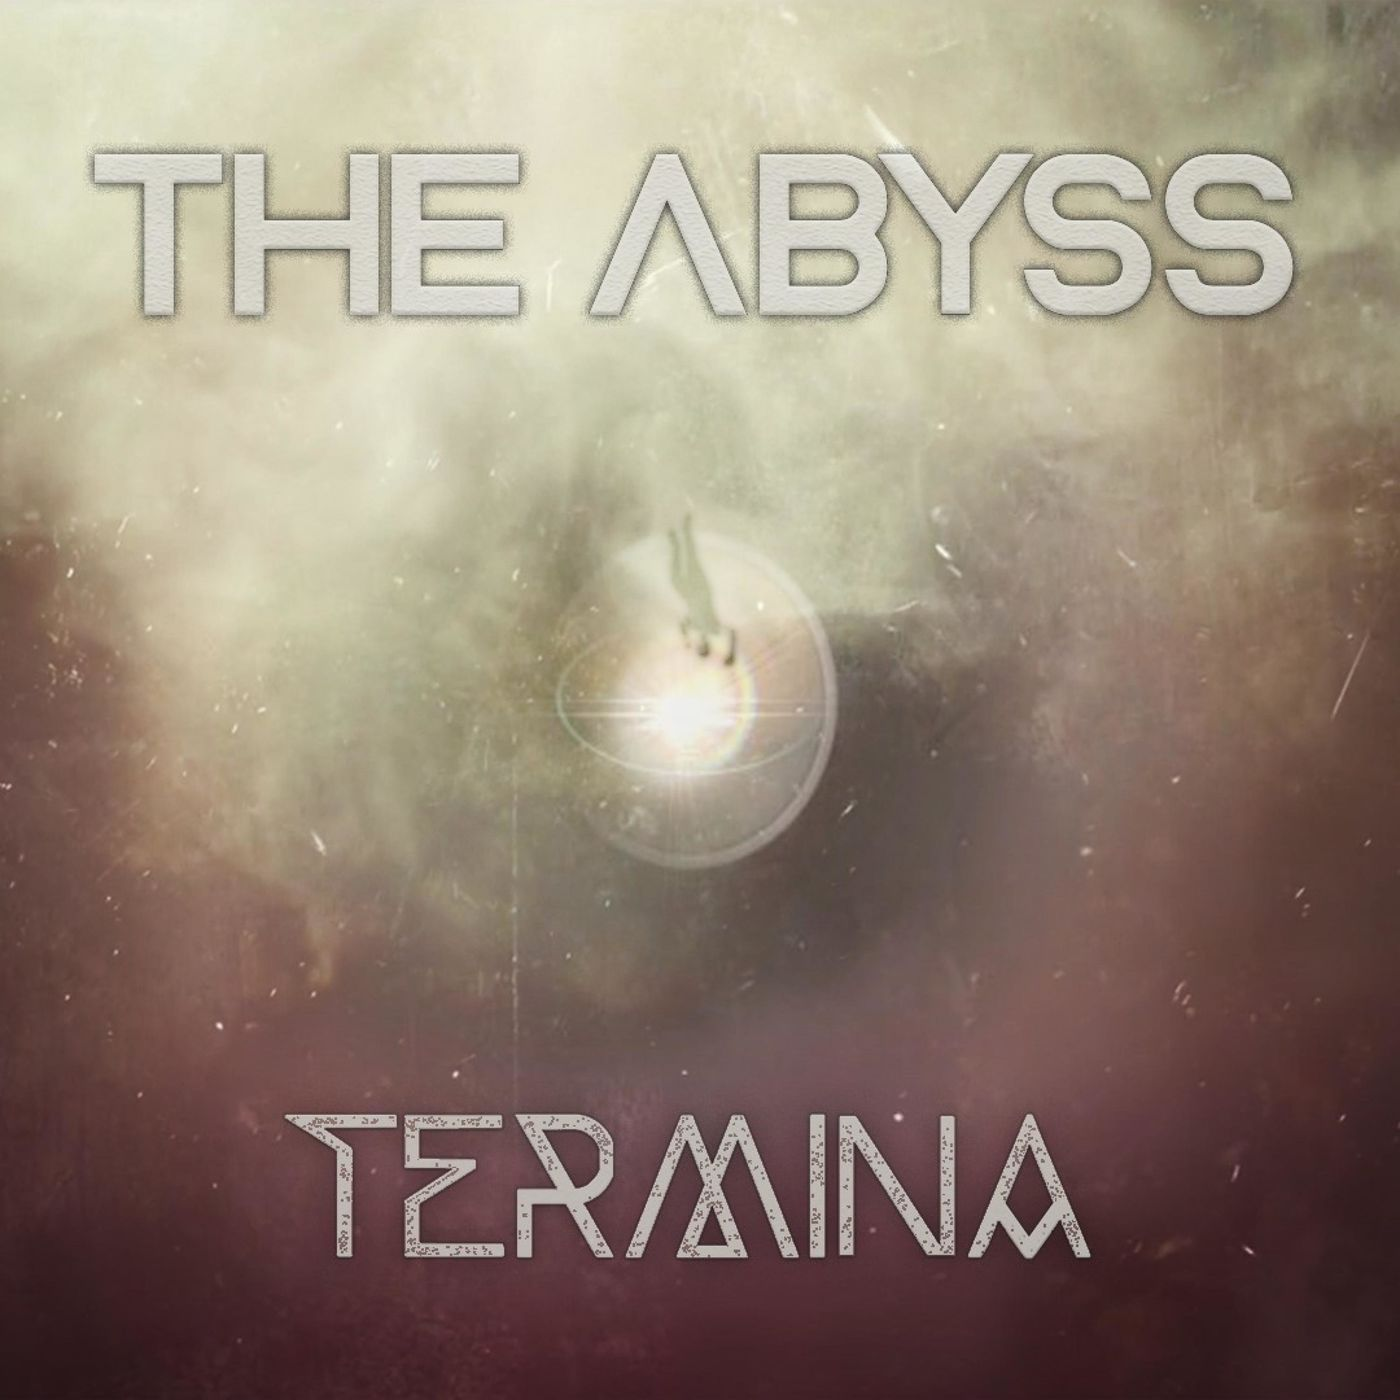 Termina - The Abyss [single] (2020)